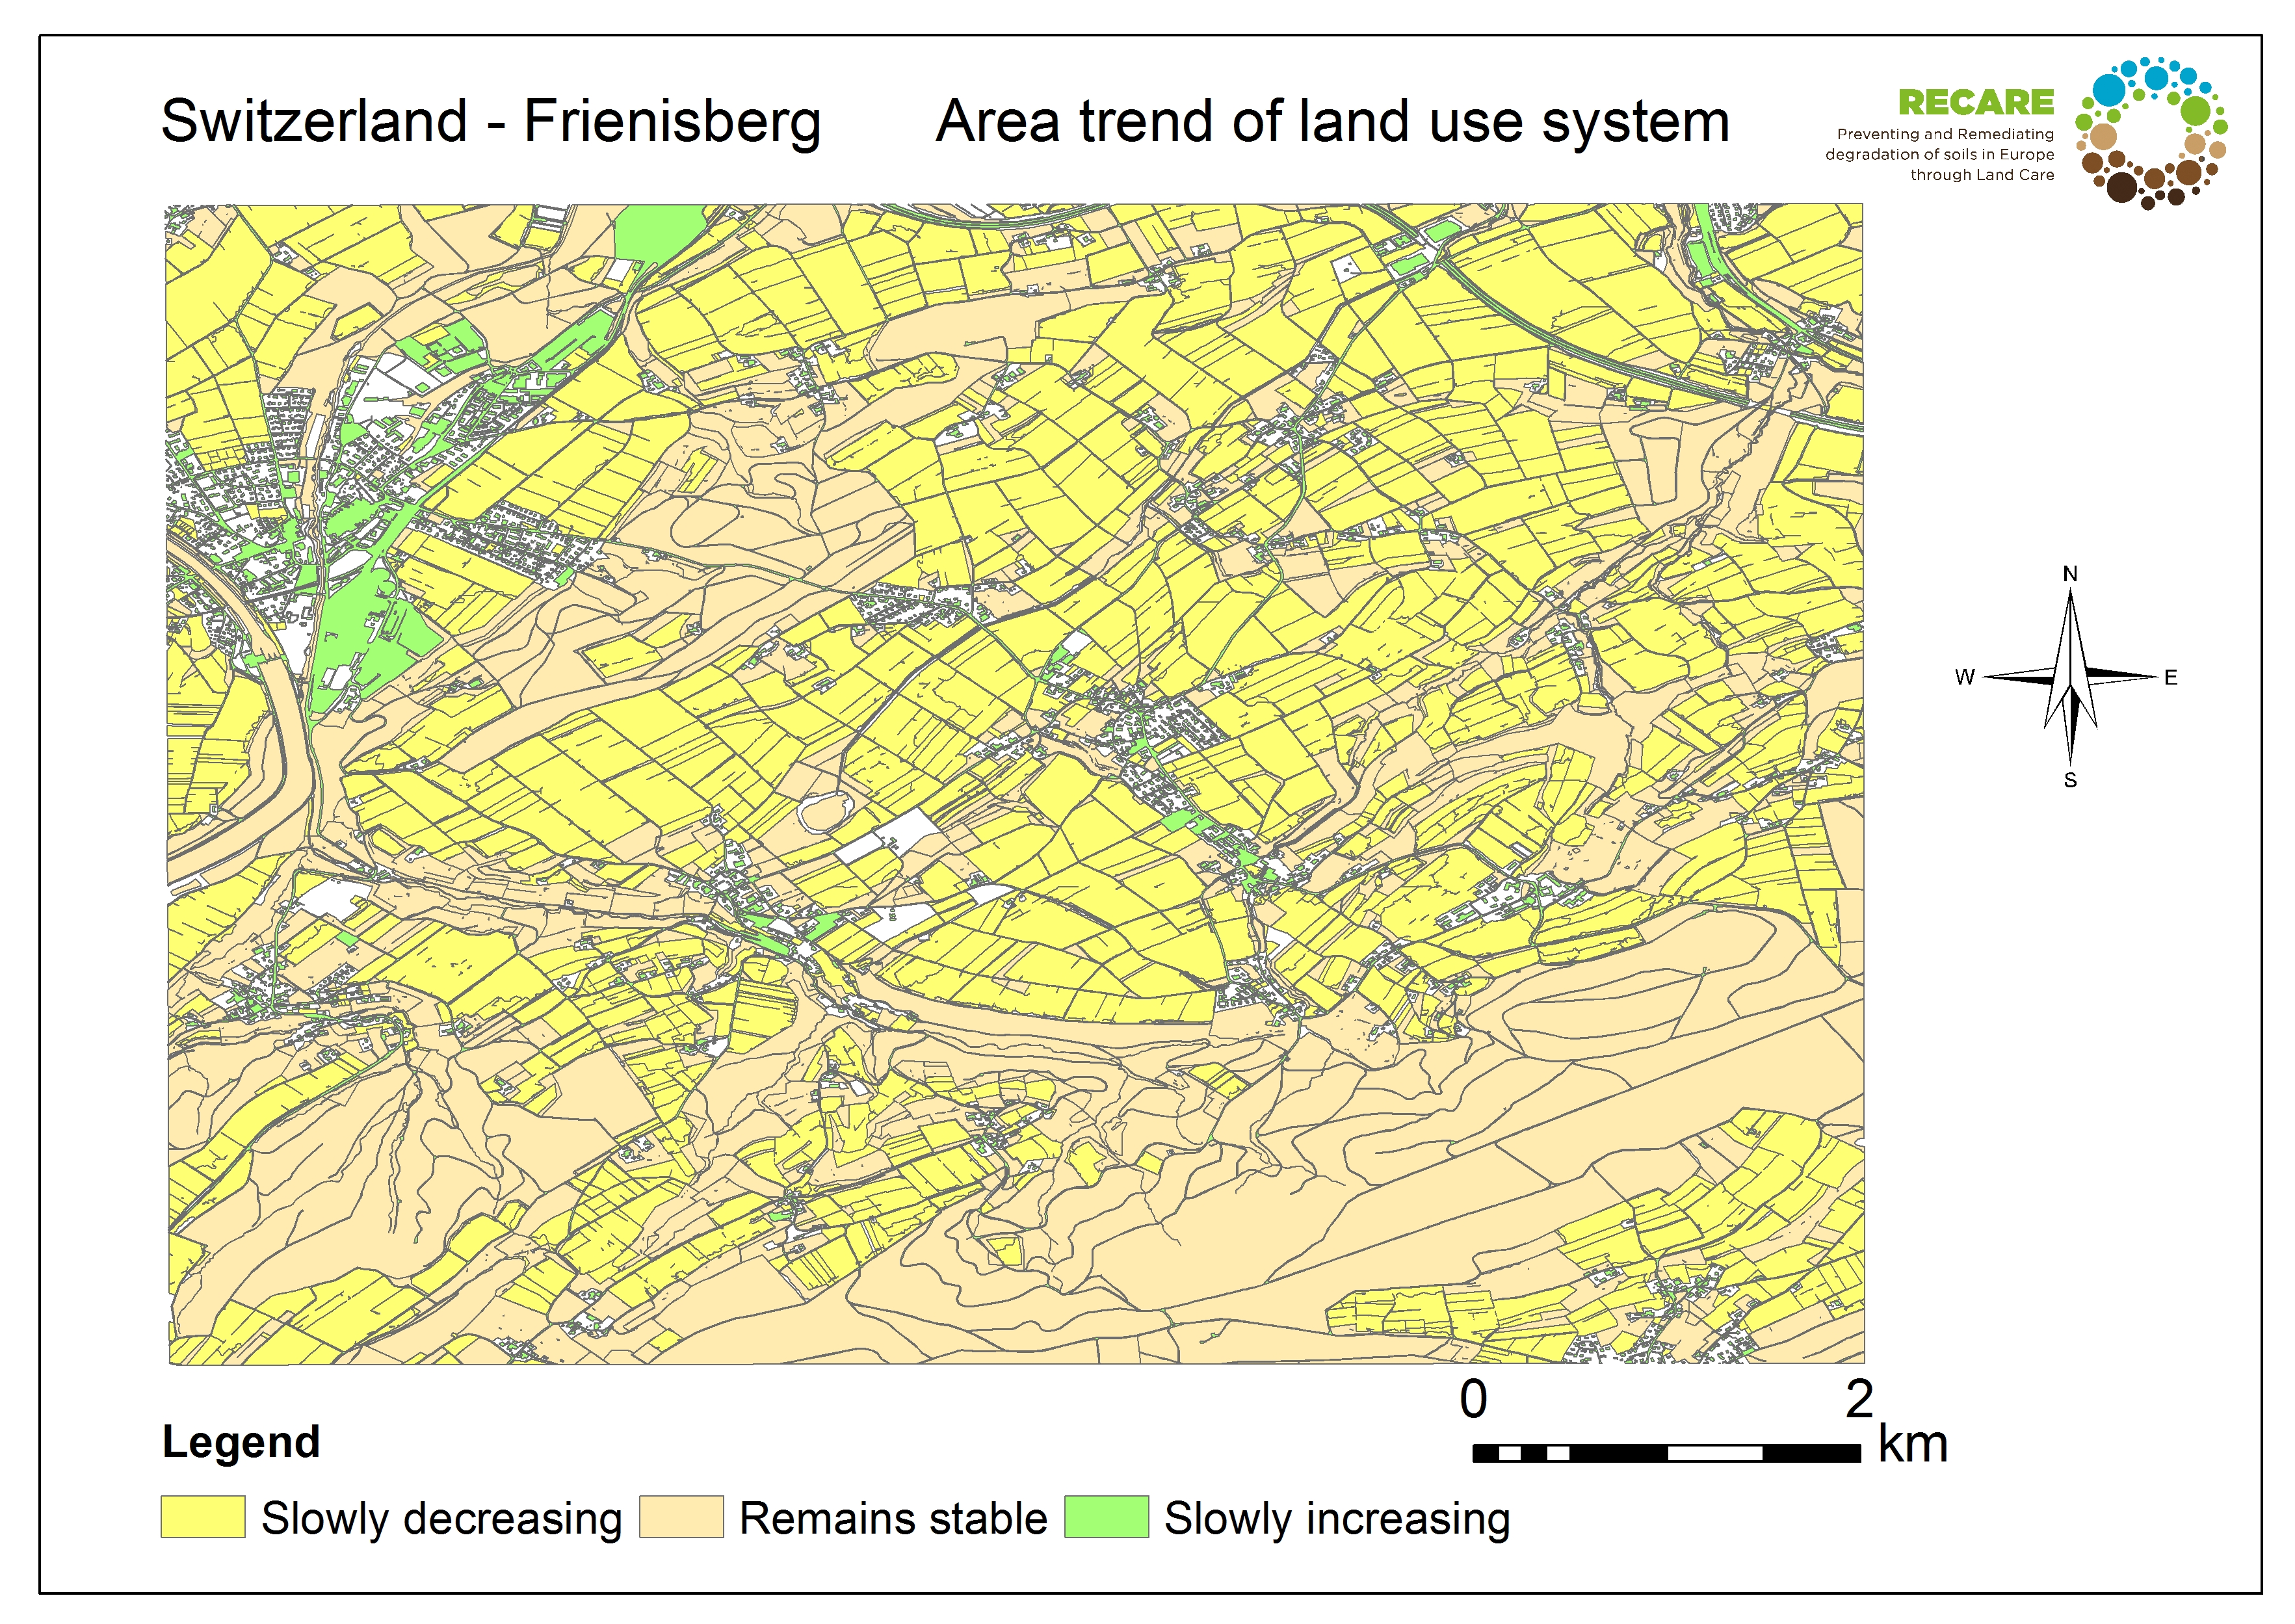 Switzerland Frienisberg area trend land use system